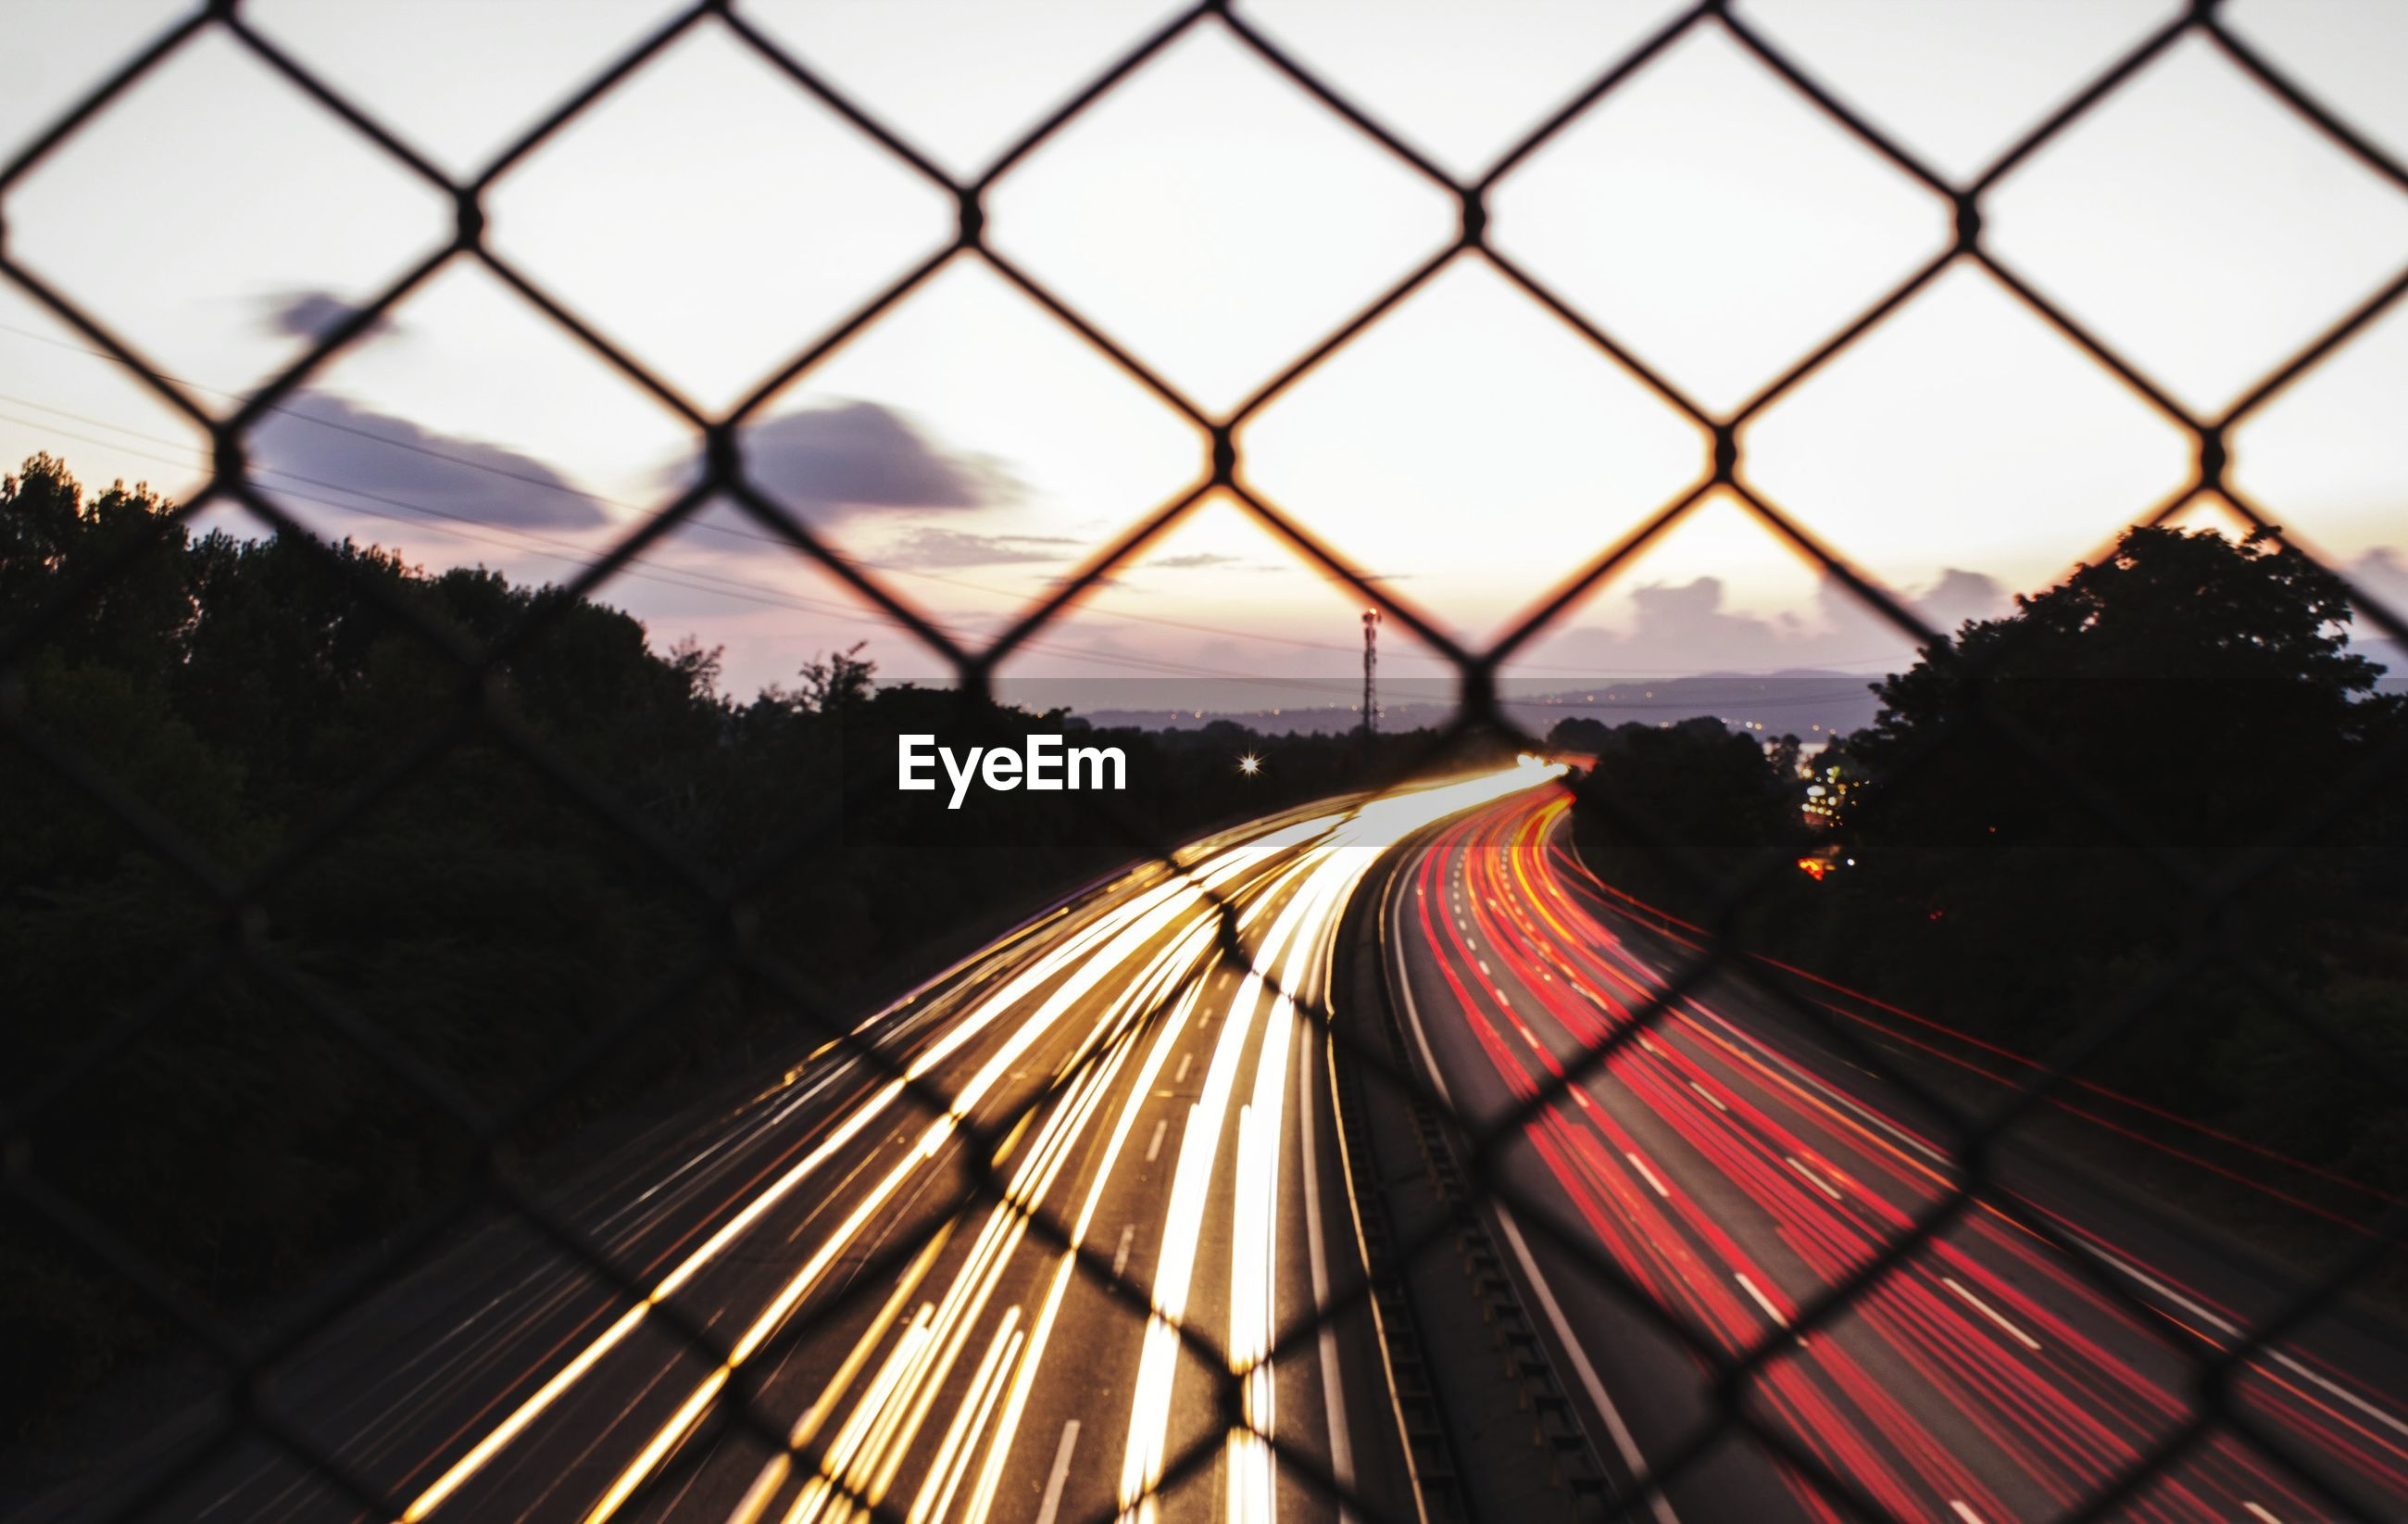 LIGHT TRAILS ON ROAD SEEN THROUGH CHAINLINK FENCE AGAINST SKY DURING SUNSET